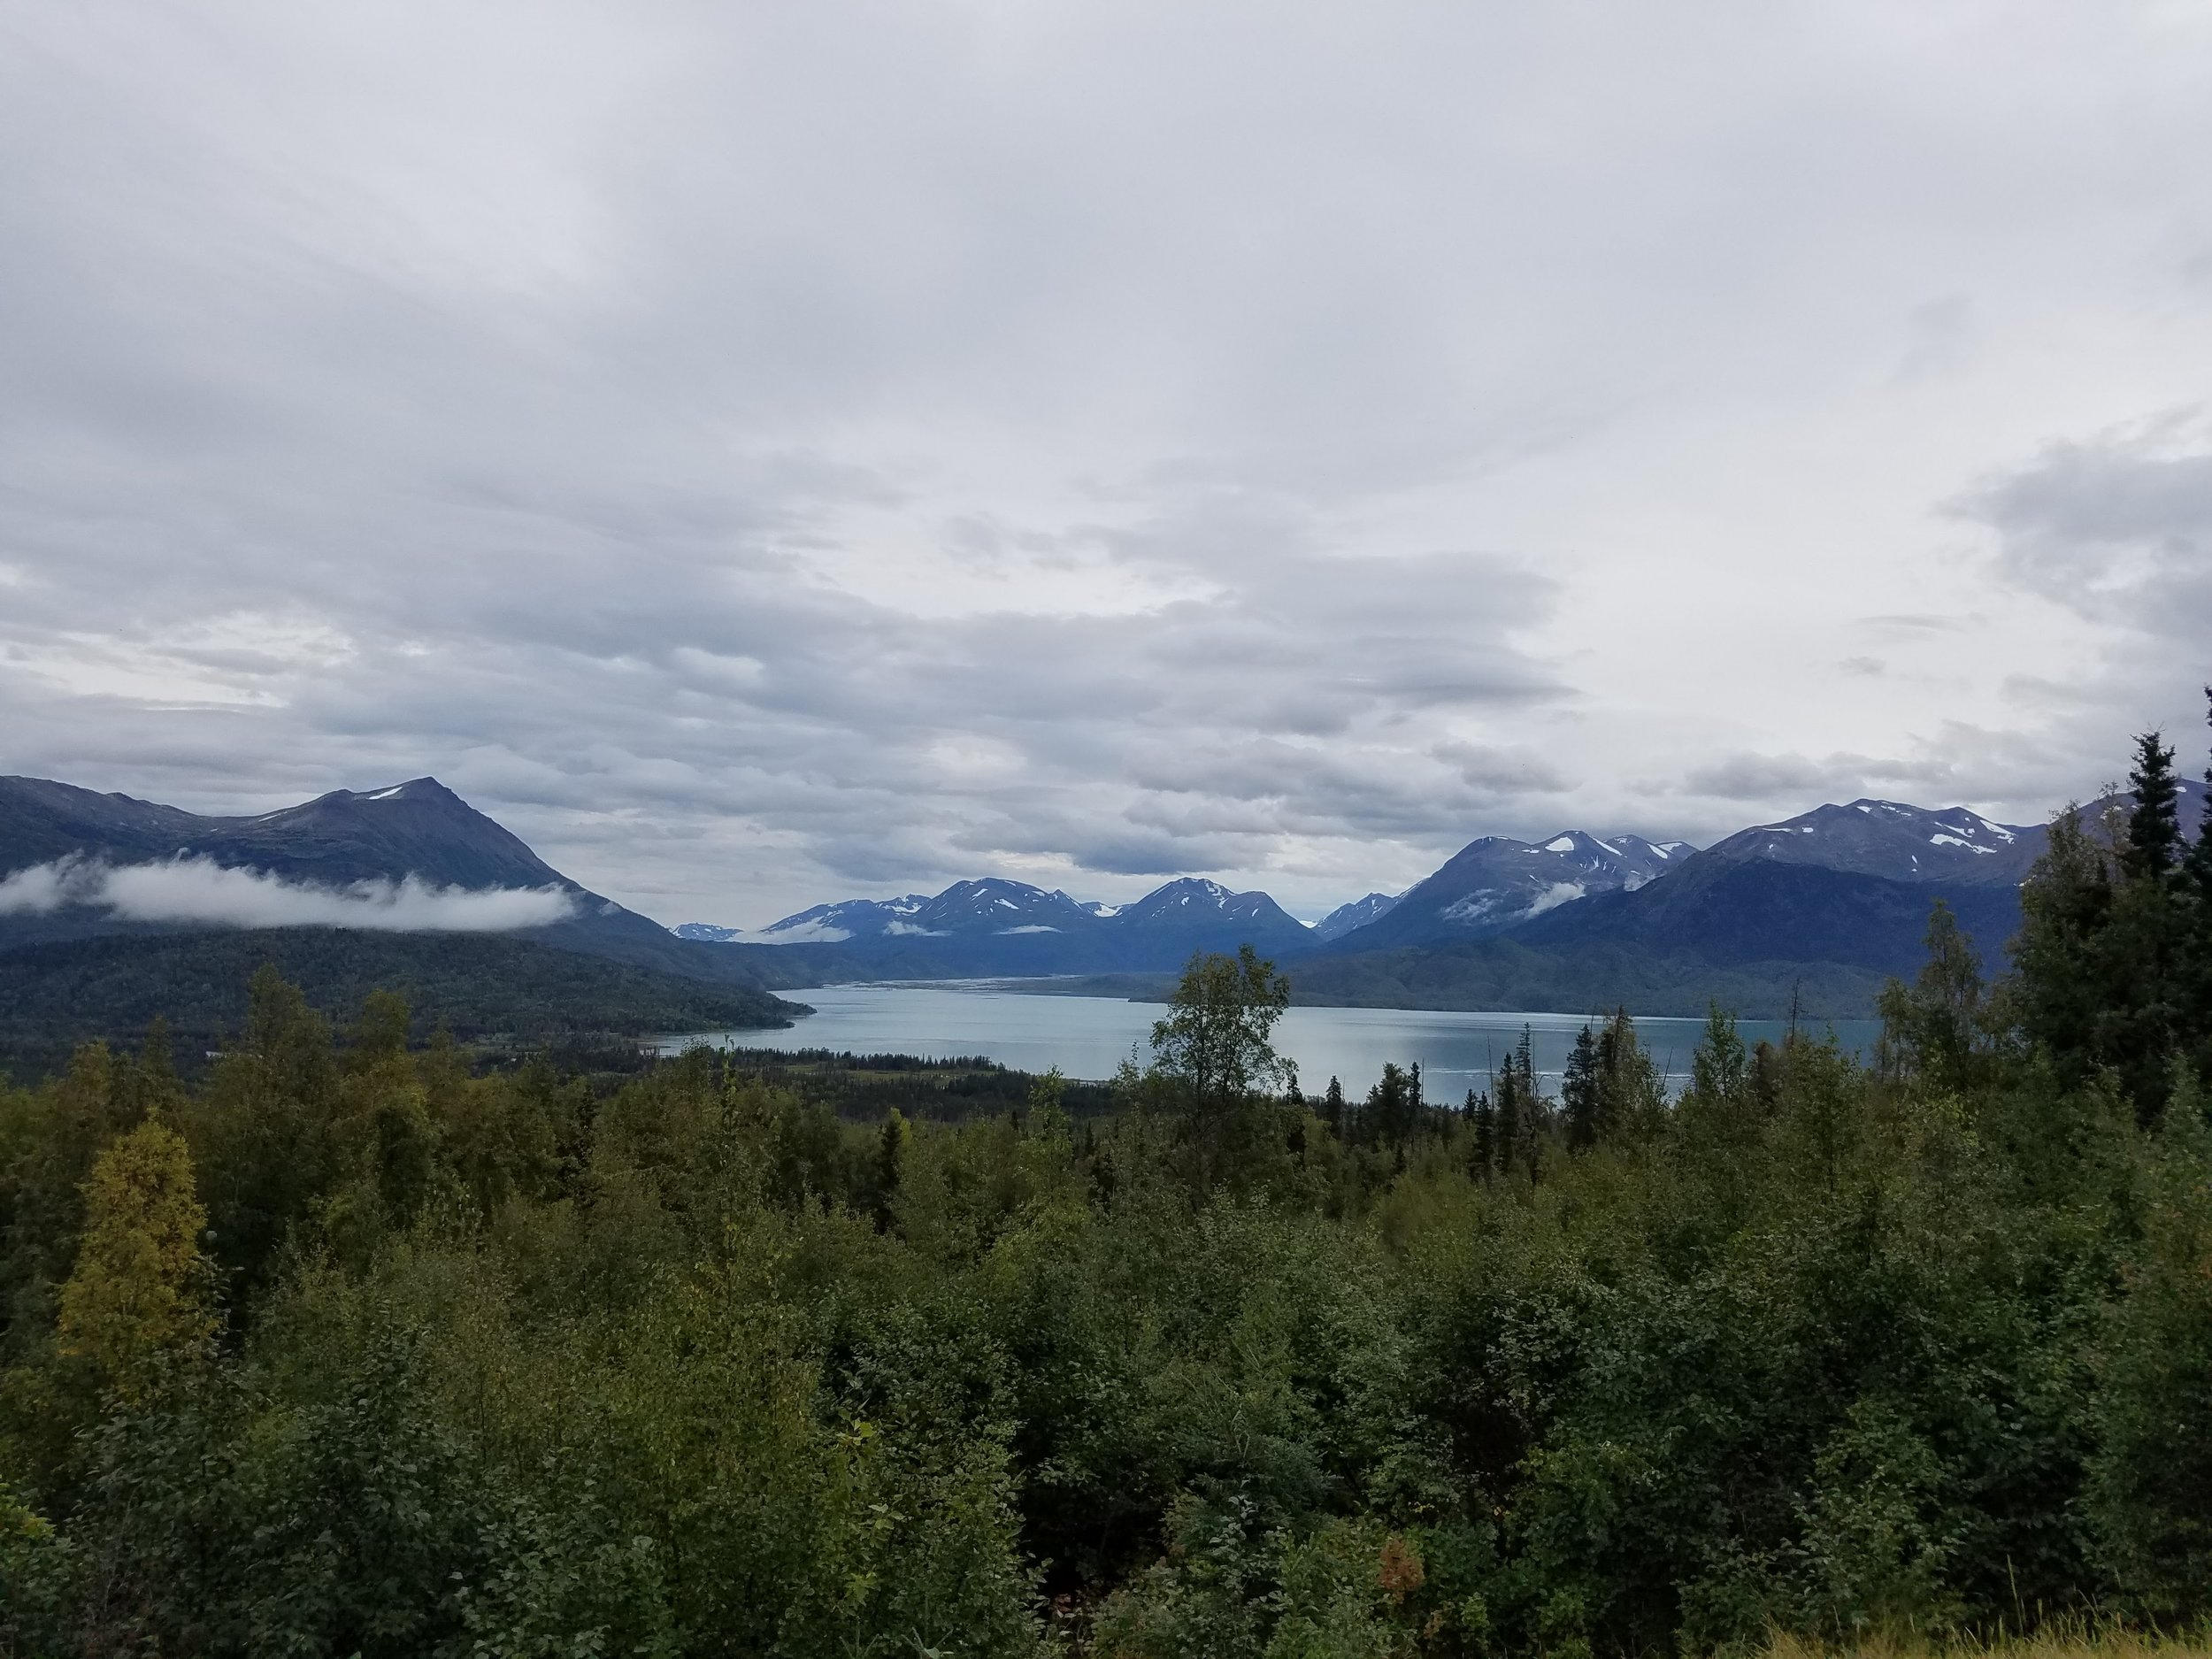 A look at Skilak Lake from a viewpoint along Skilak Lake Road.